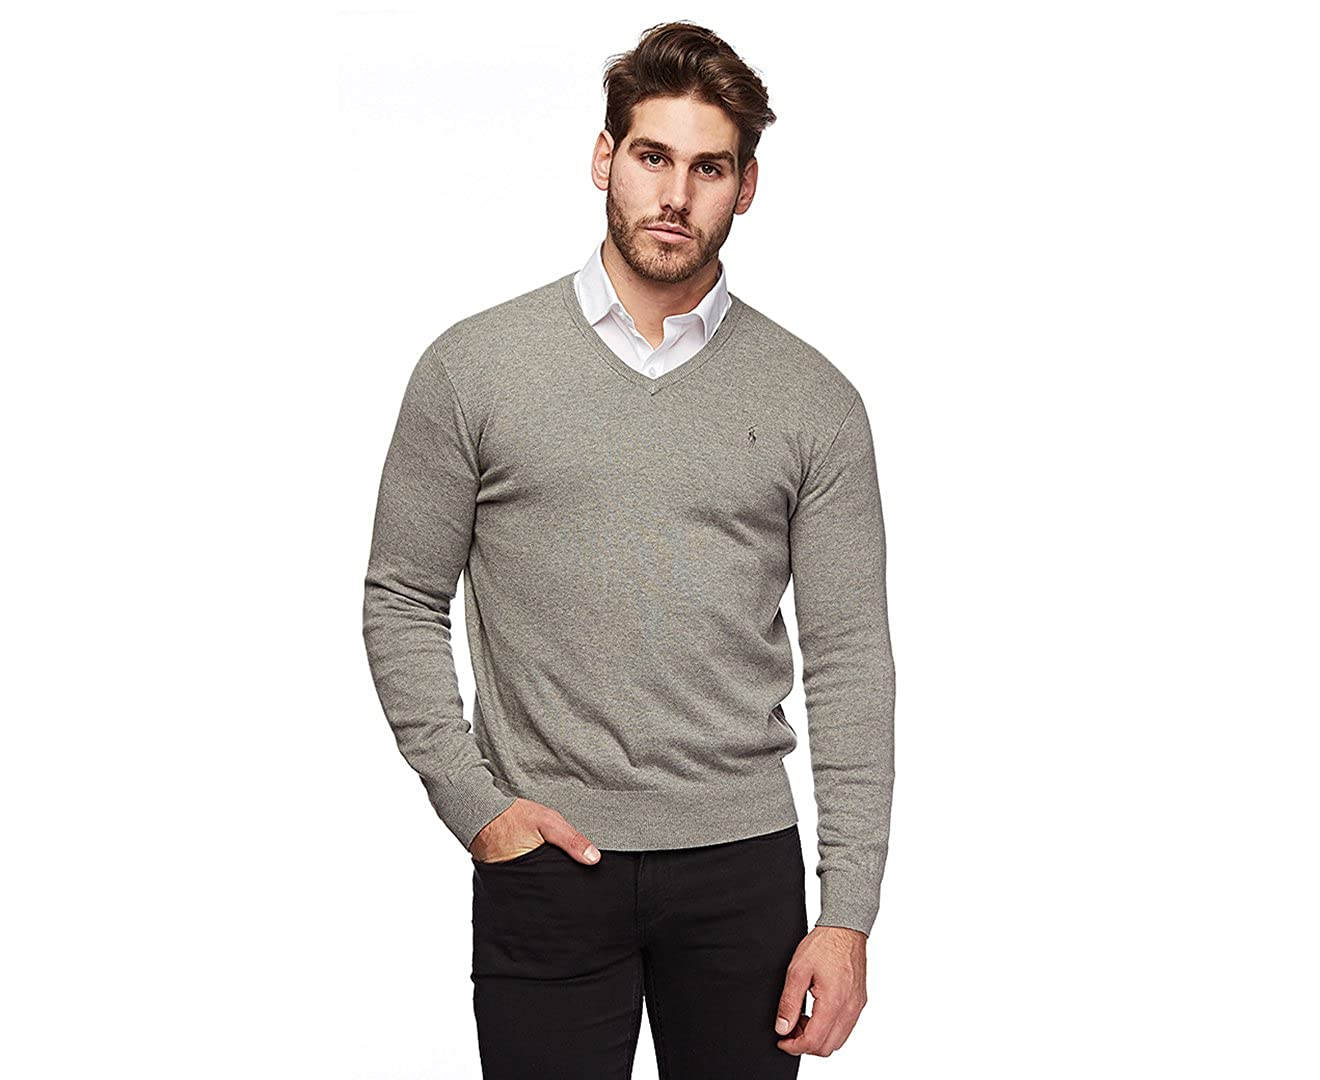 3ab17136e0 Polo Ralph Lauren Men's Pima Cotton V Neck Long Sleeve Sweater